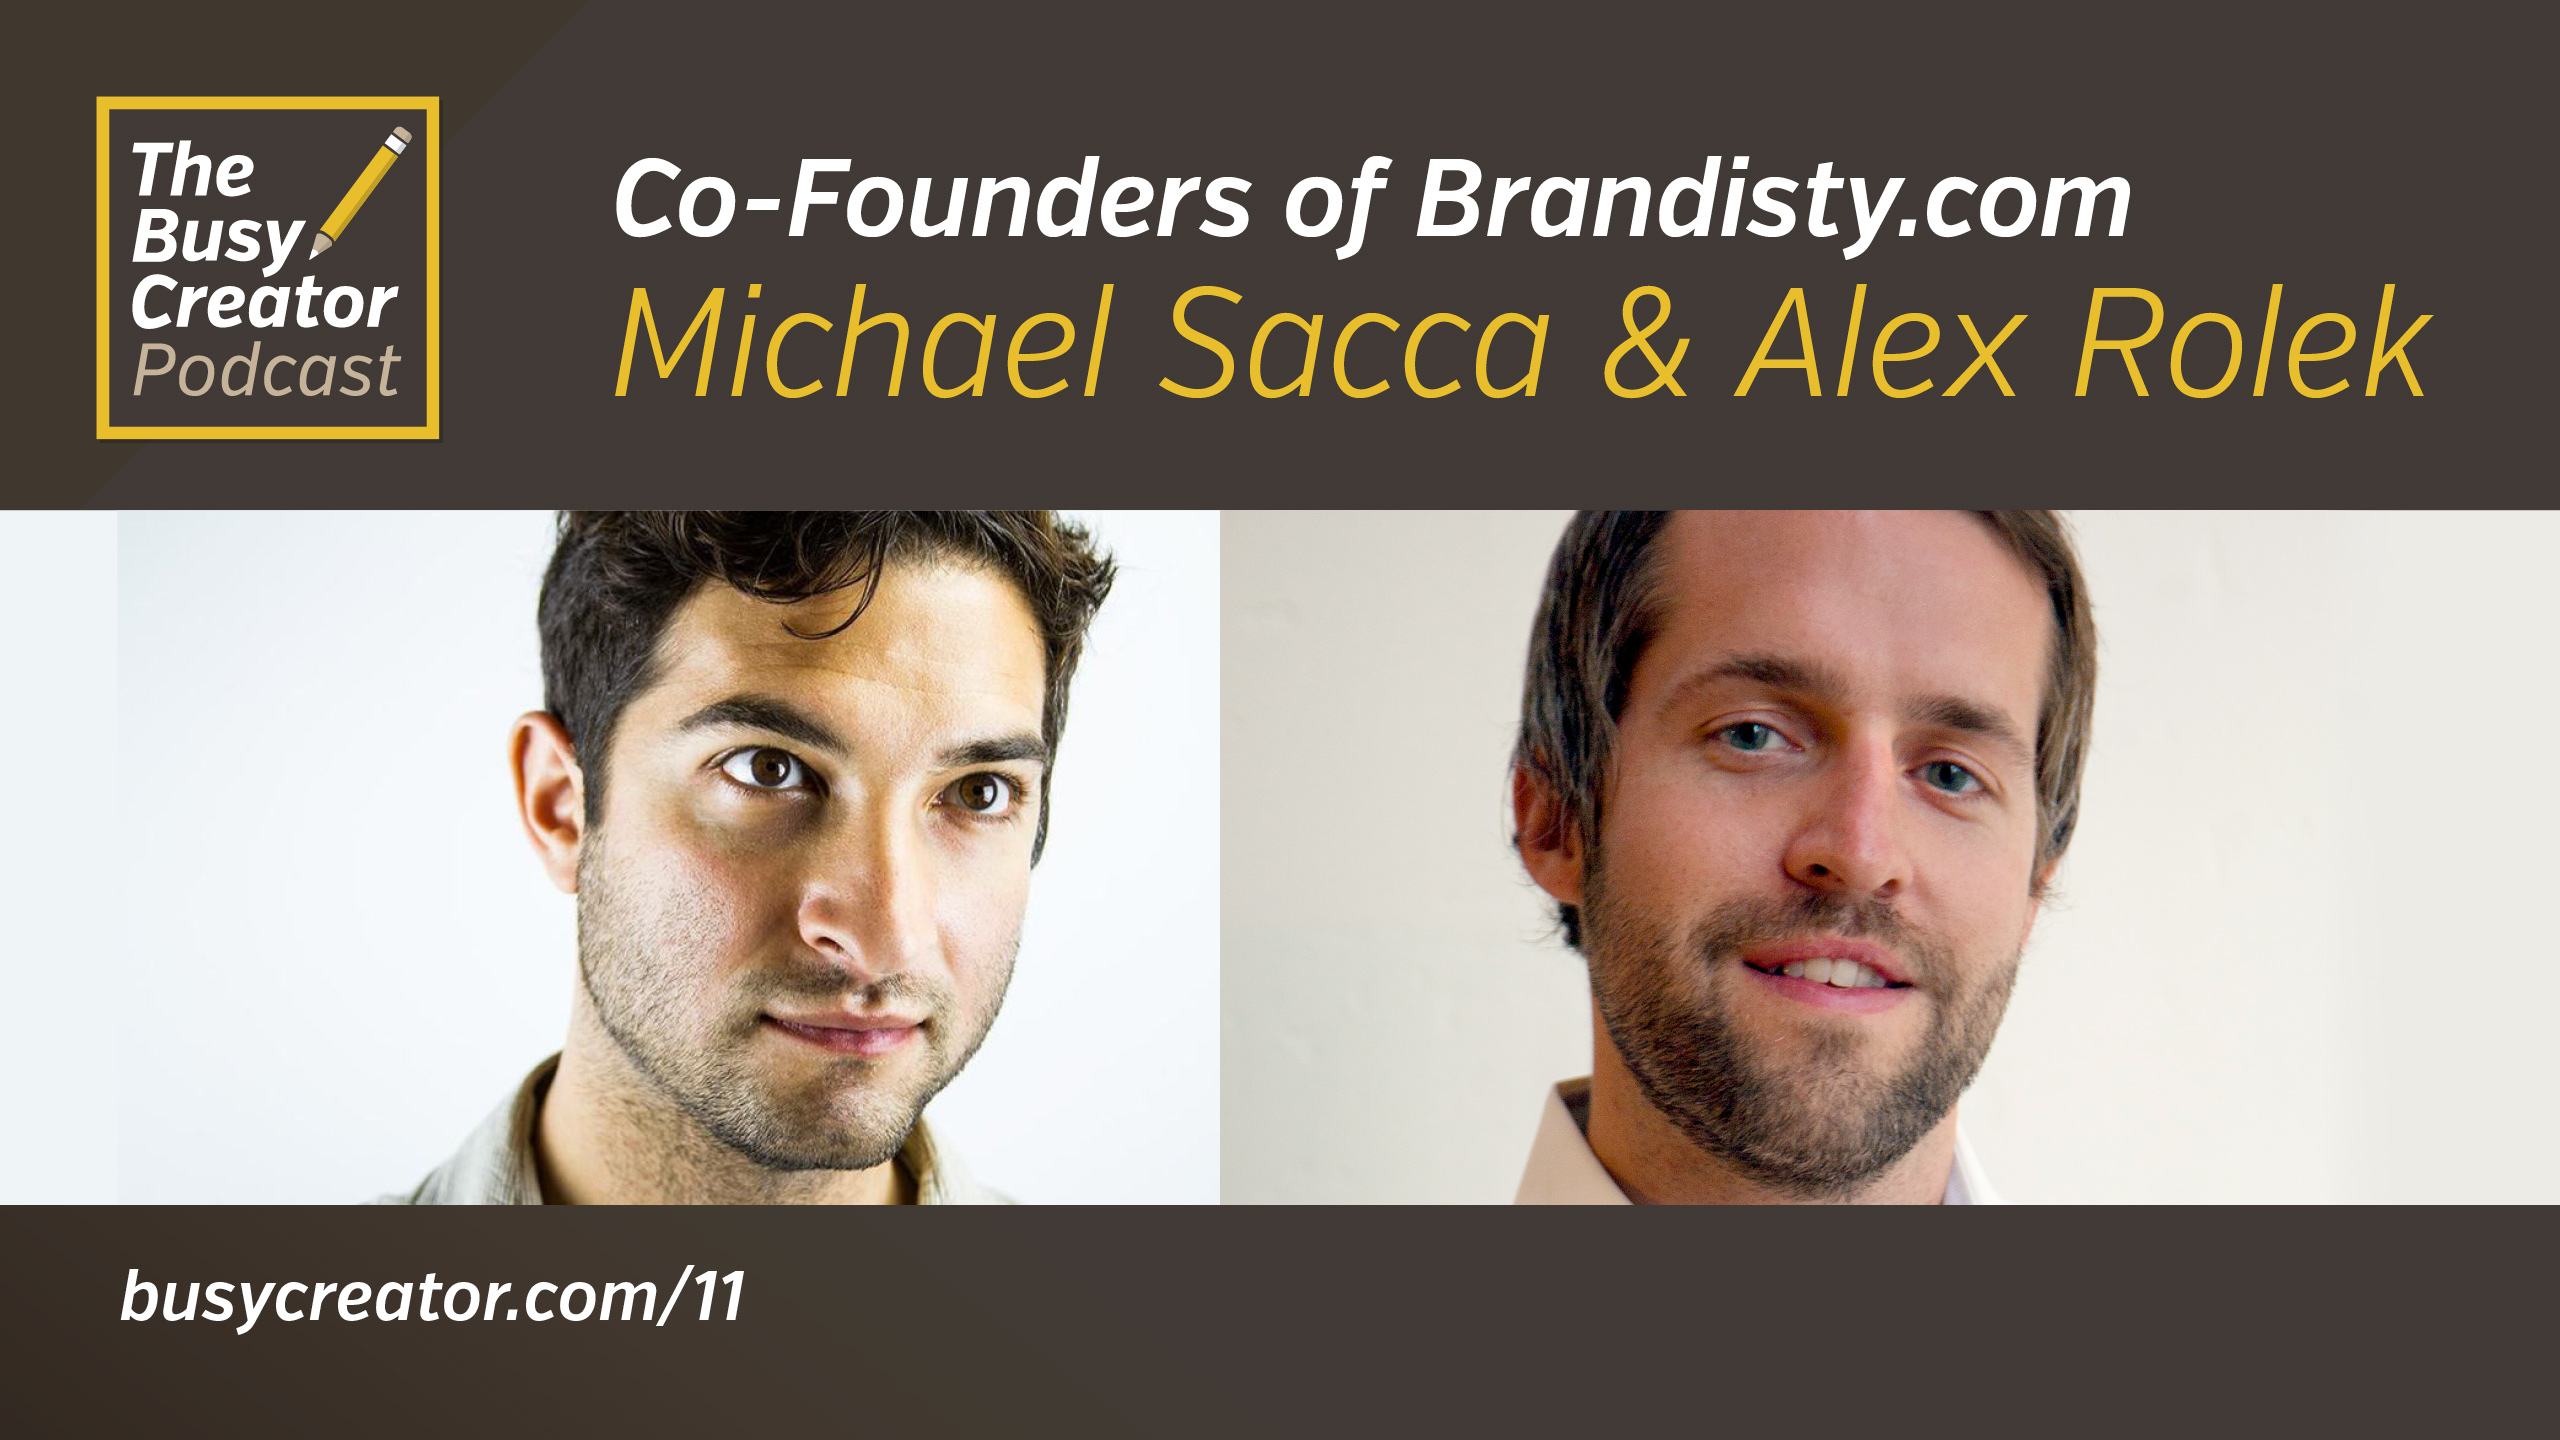 Co-founders of Brandisty.com Michael Sacca & Alex Rolek Share Tactics, Insight for Launching a Web App